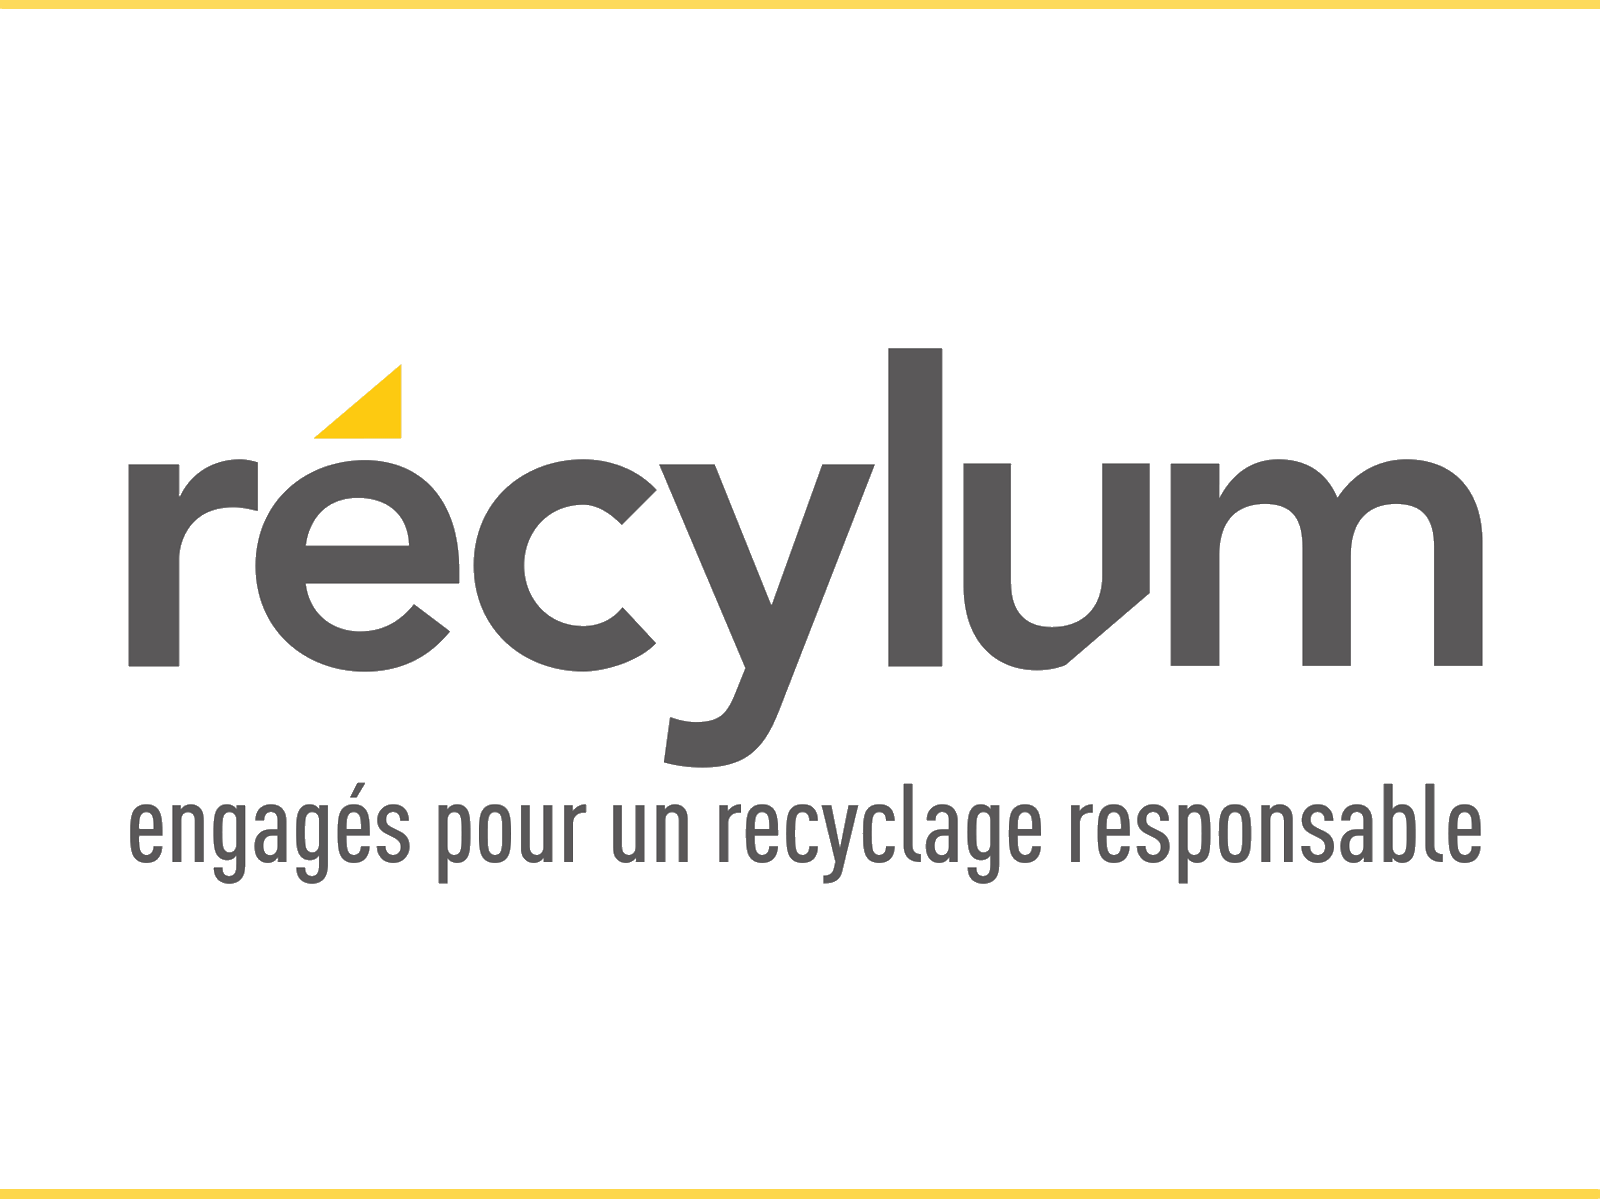 Recycler au maximum afin d'éviter le gaspillage